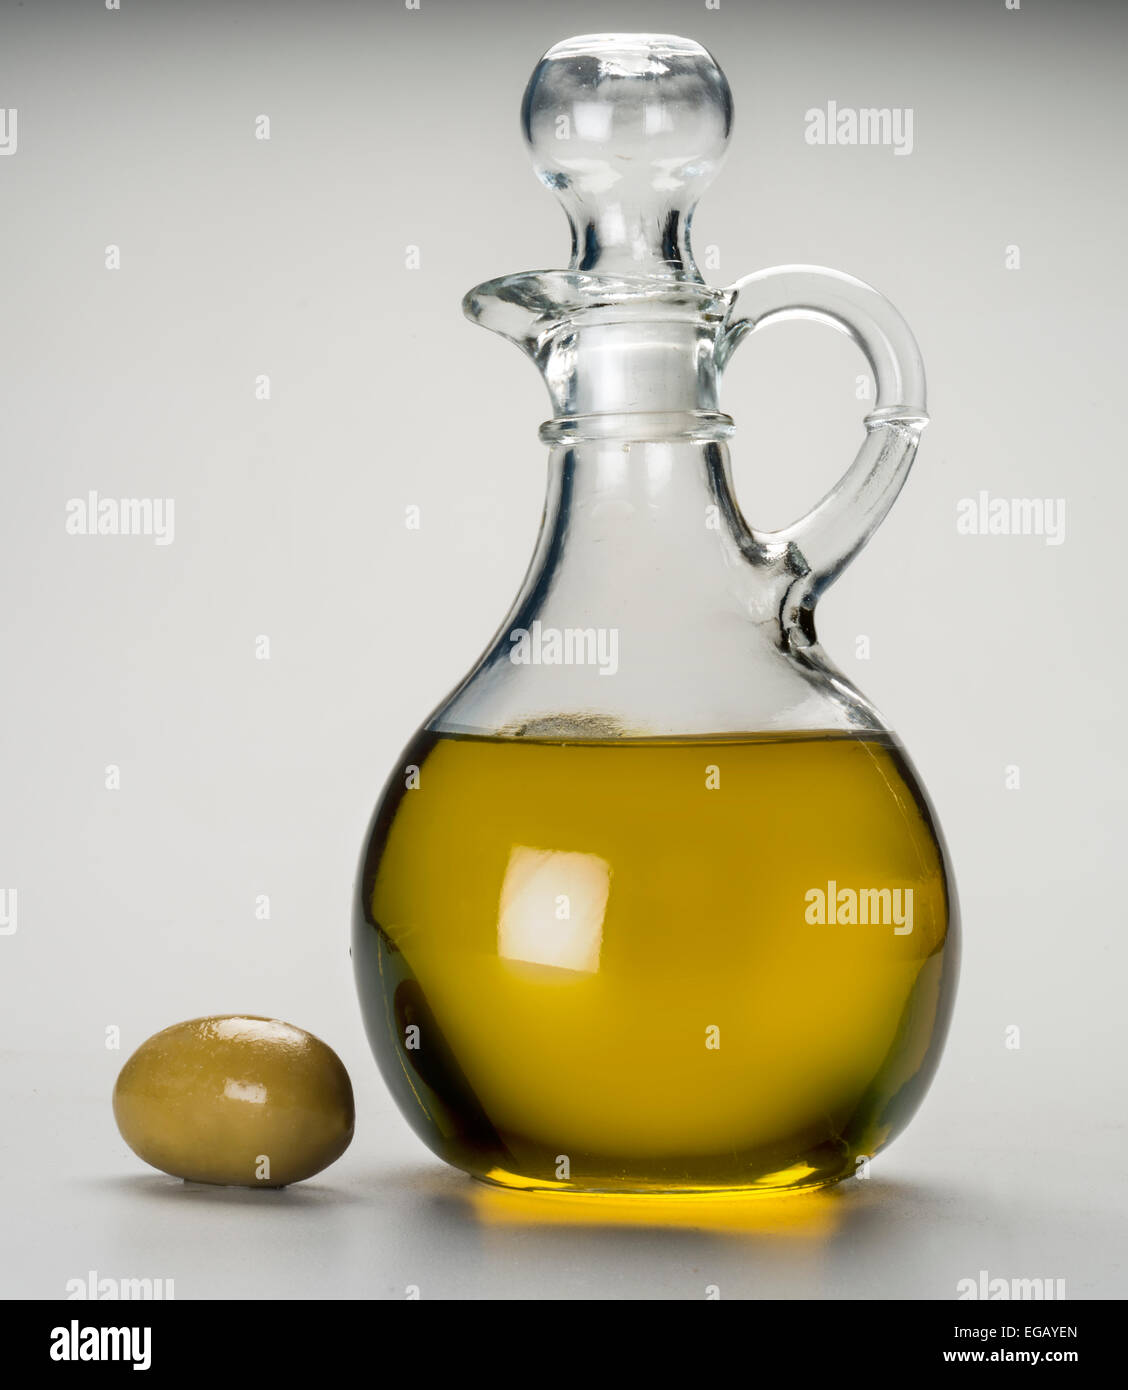 olive oil cruet - Stock Image